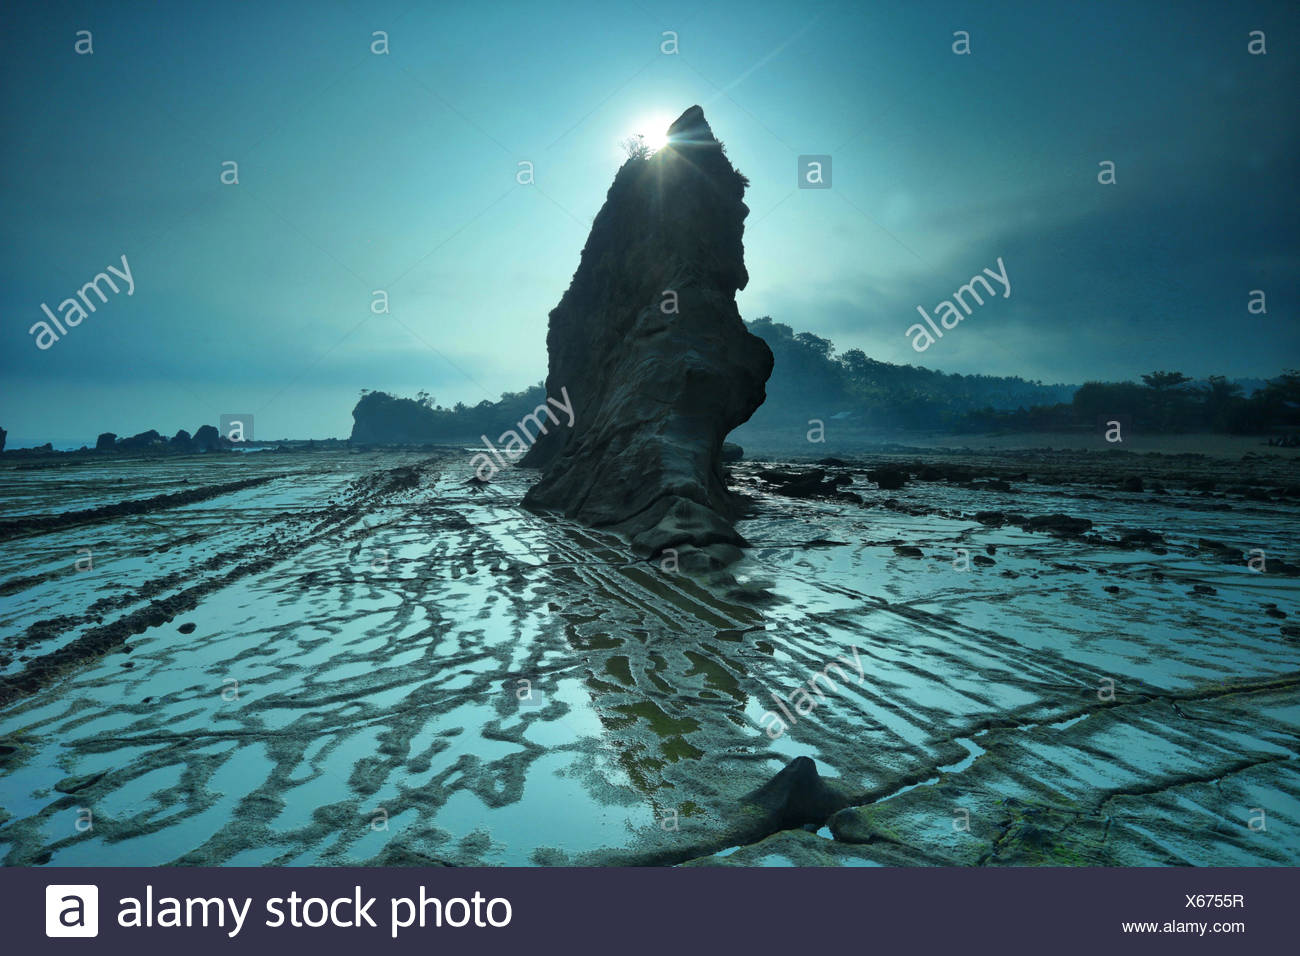 Indonesia, Sawarna, Tanjung Layar, View of rock formation - Stock Image